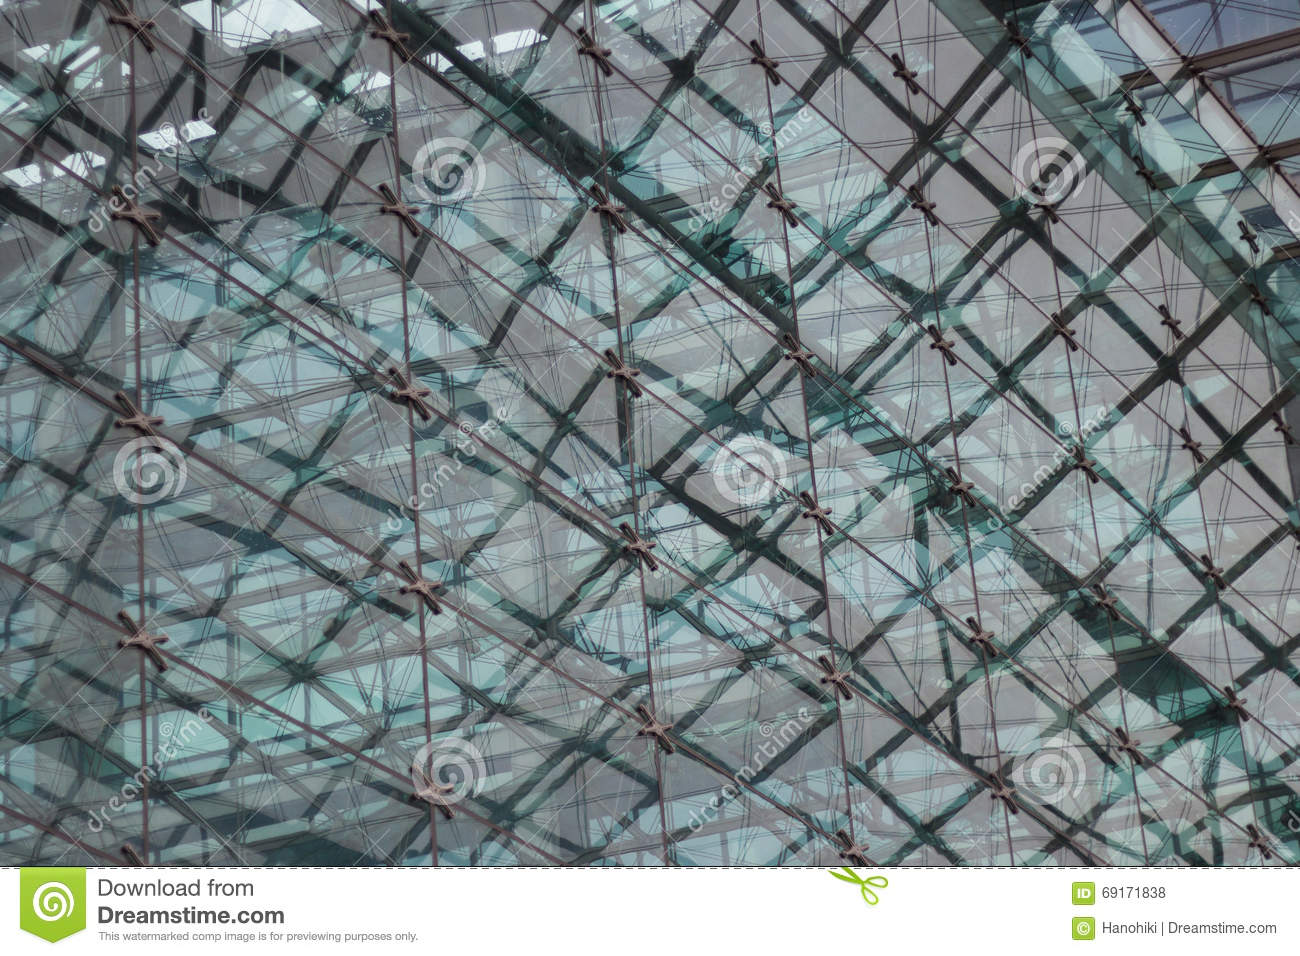 Modern Architecture Pattern abstract architectural pattern, glass facade of modern building